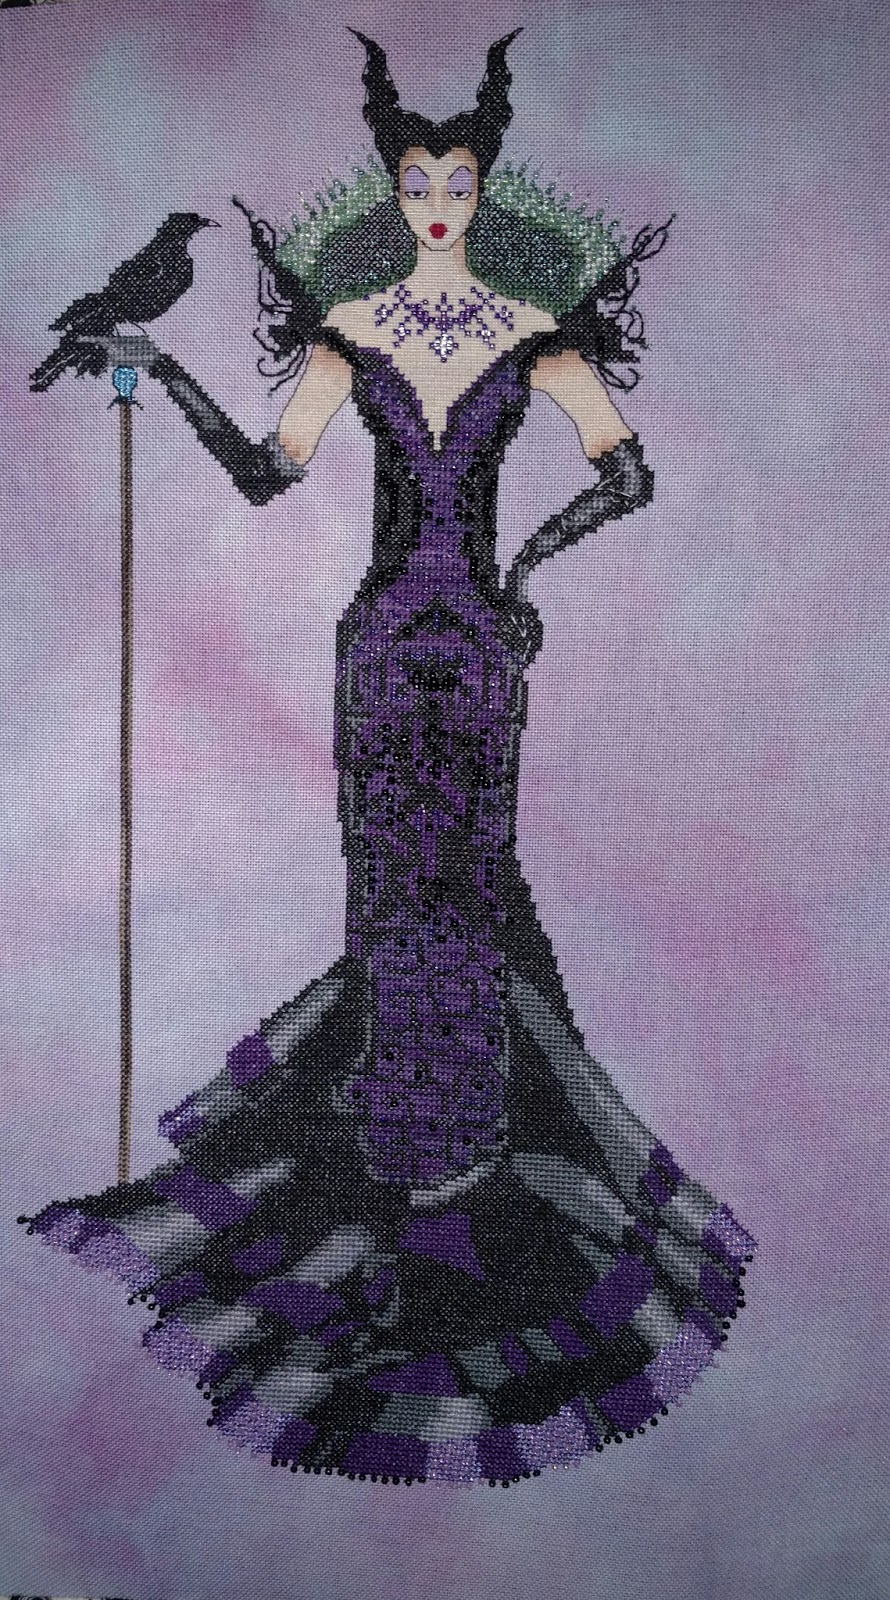 Twistedntangled threads completed cross stitch conversion of the raven queen by mirabilia original chart designed by nora corbett stitched on 32 ct lugana by fabbys by stephanie using dmc waterlilies nvjuhfo Image collections